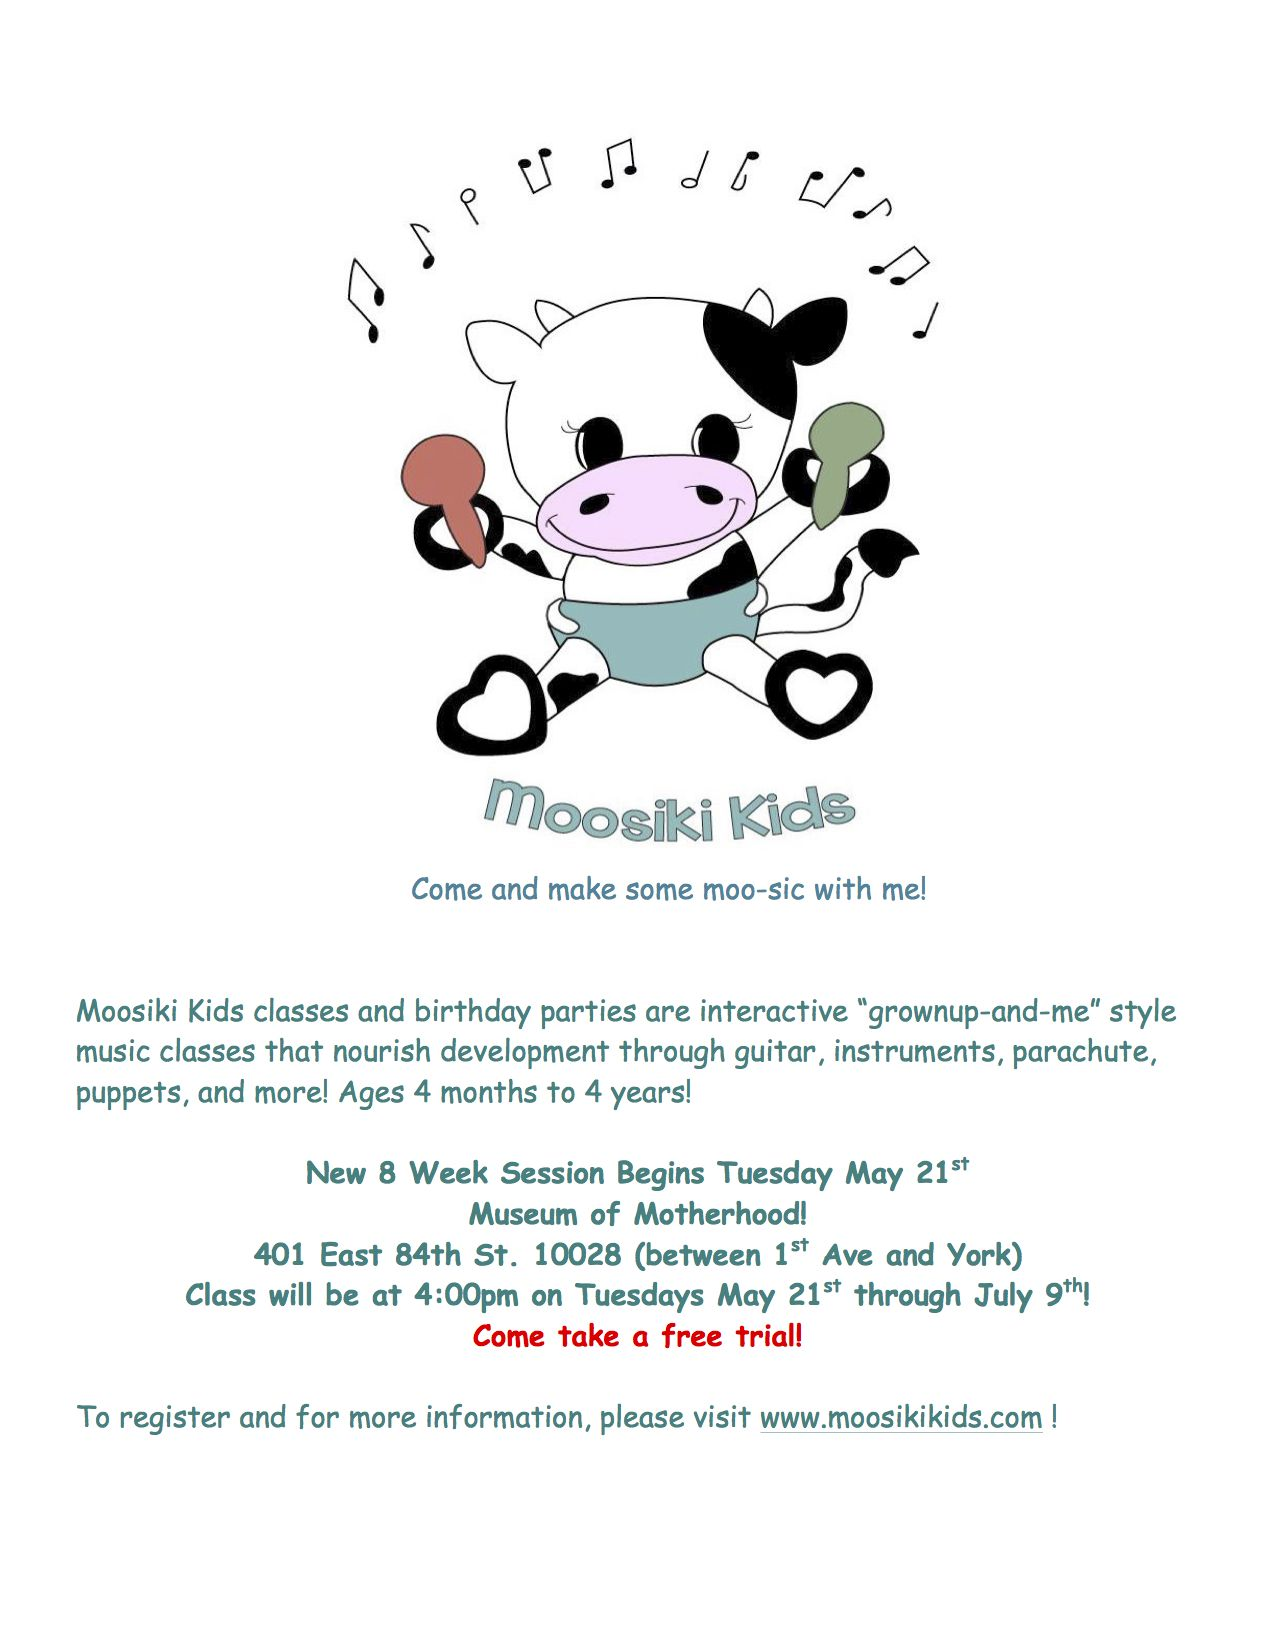 New! #Music classes for #kids - #infant, #toddler and #preschooler - with #Moosiki Kids! Starts Tues., 5/21. MOMmuseum.org for info.